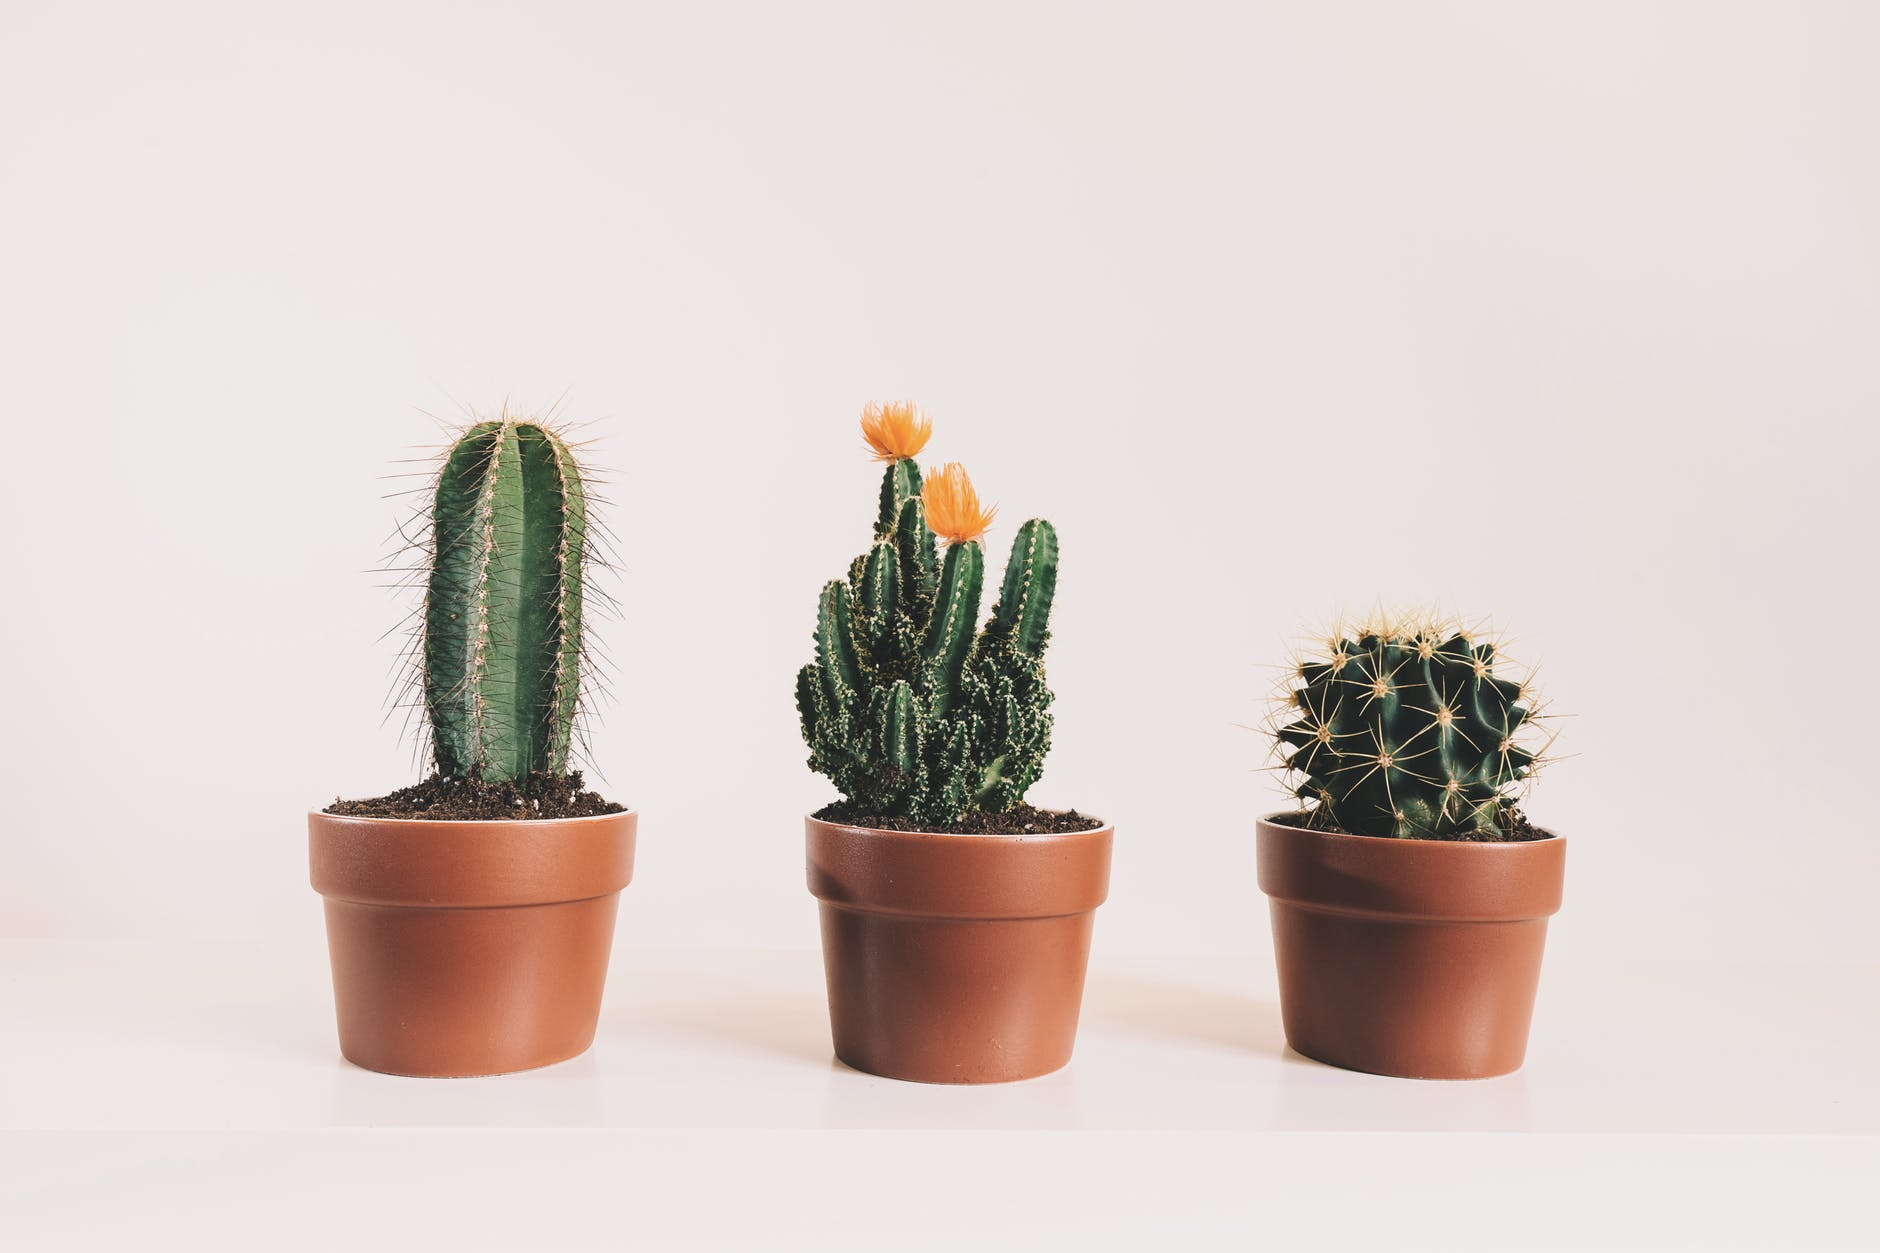 three potted cactus plants